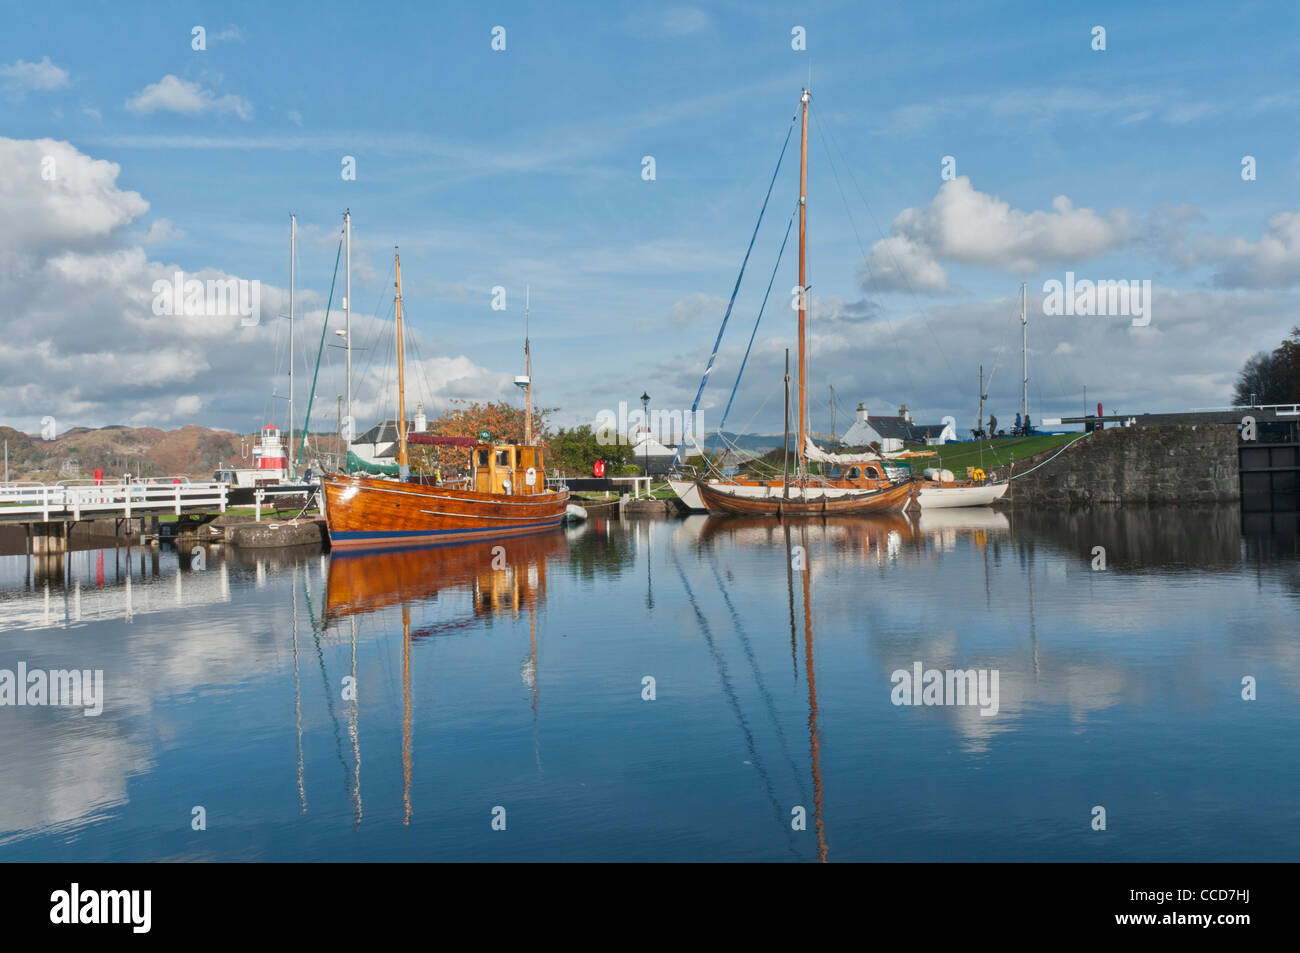 Yachts and boats in basin Crinan Canal Crinan Argyll & Bute Scotland - Stock Image